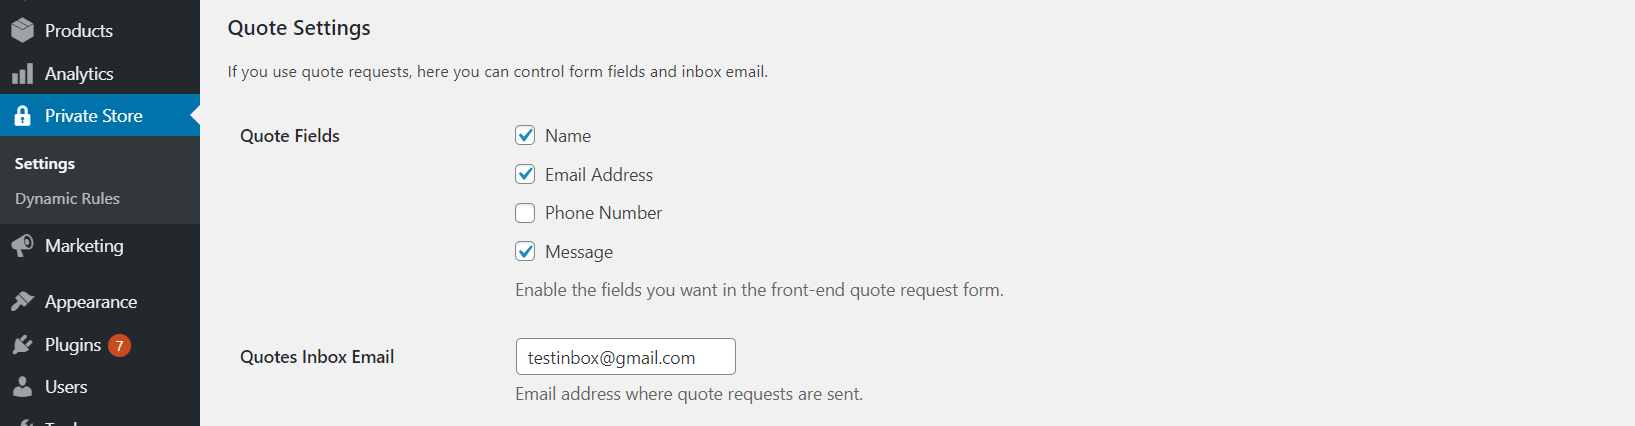 Quote Request Settings